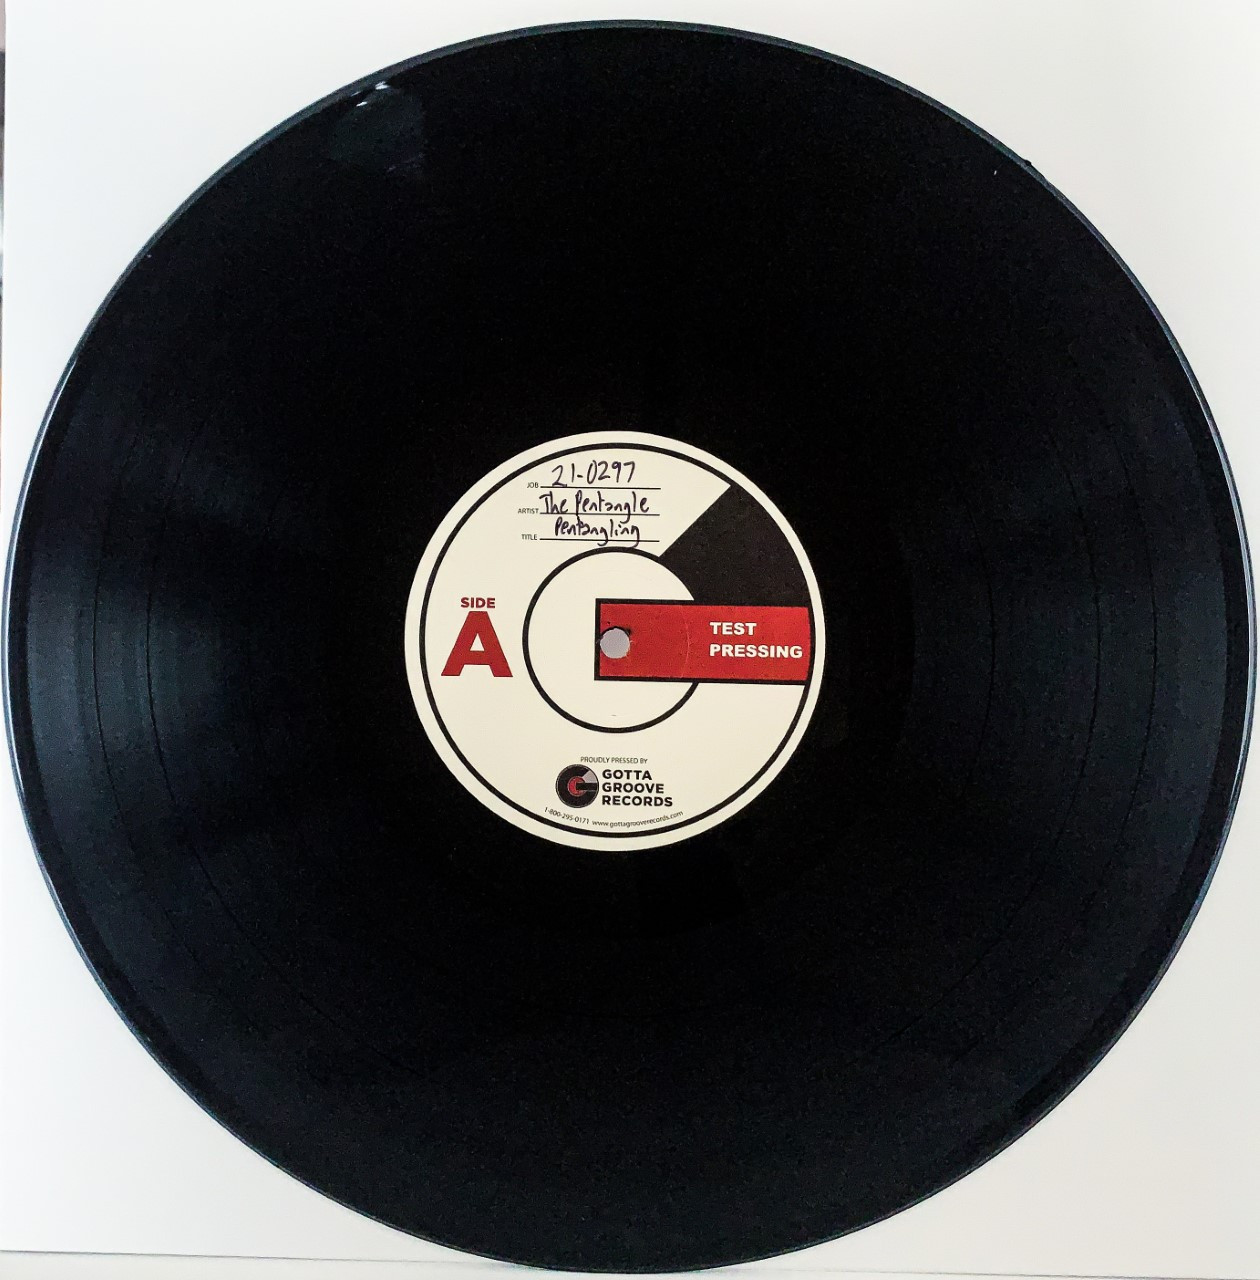 Pentangling by The Pentangle vinyl test pressing available now.